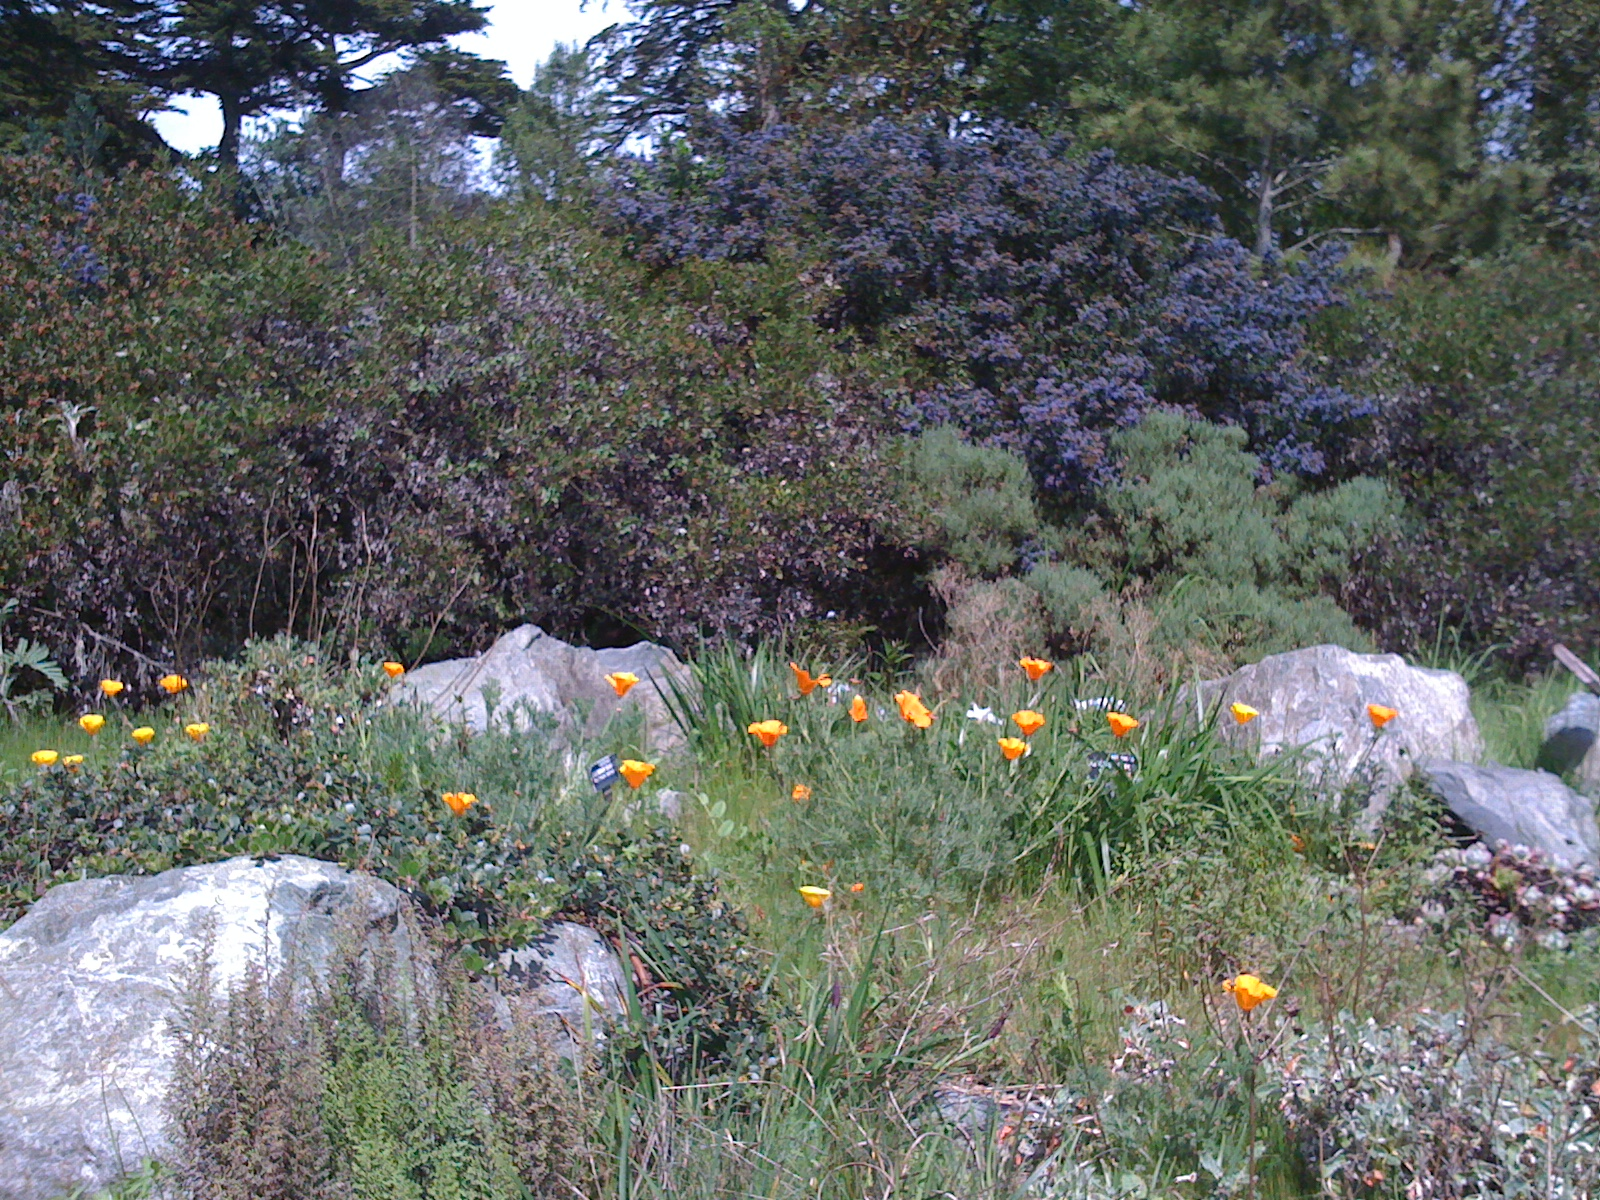 California Poppies Backed By Ceanothus In The Botanical Garden, California  Section